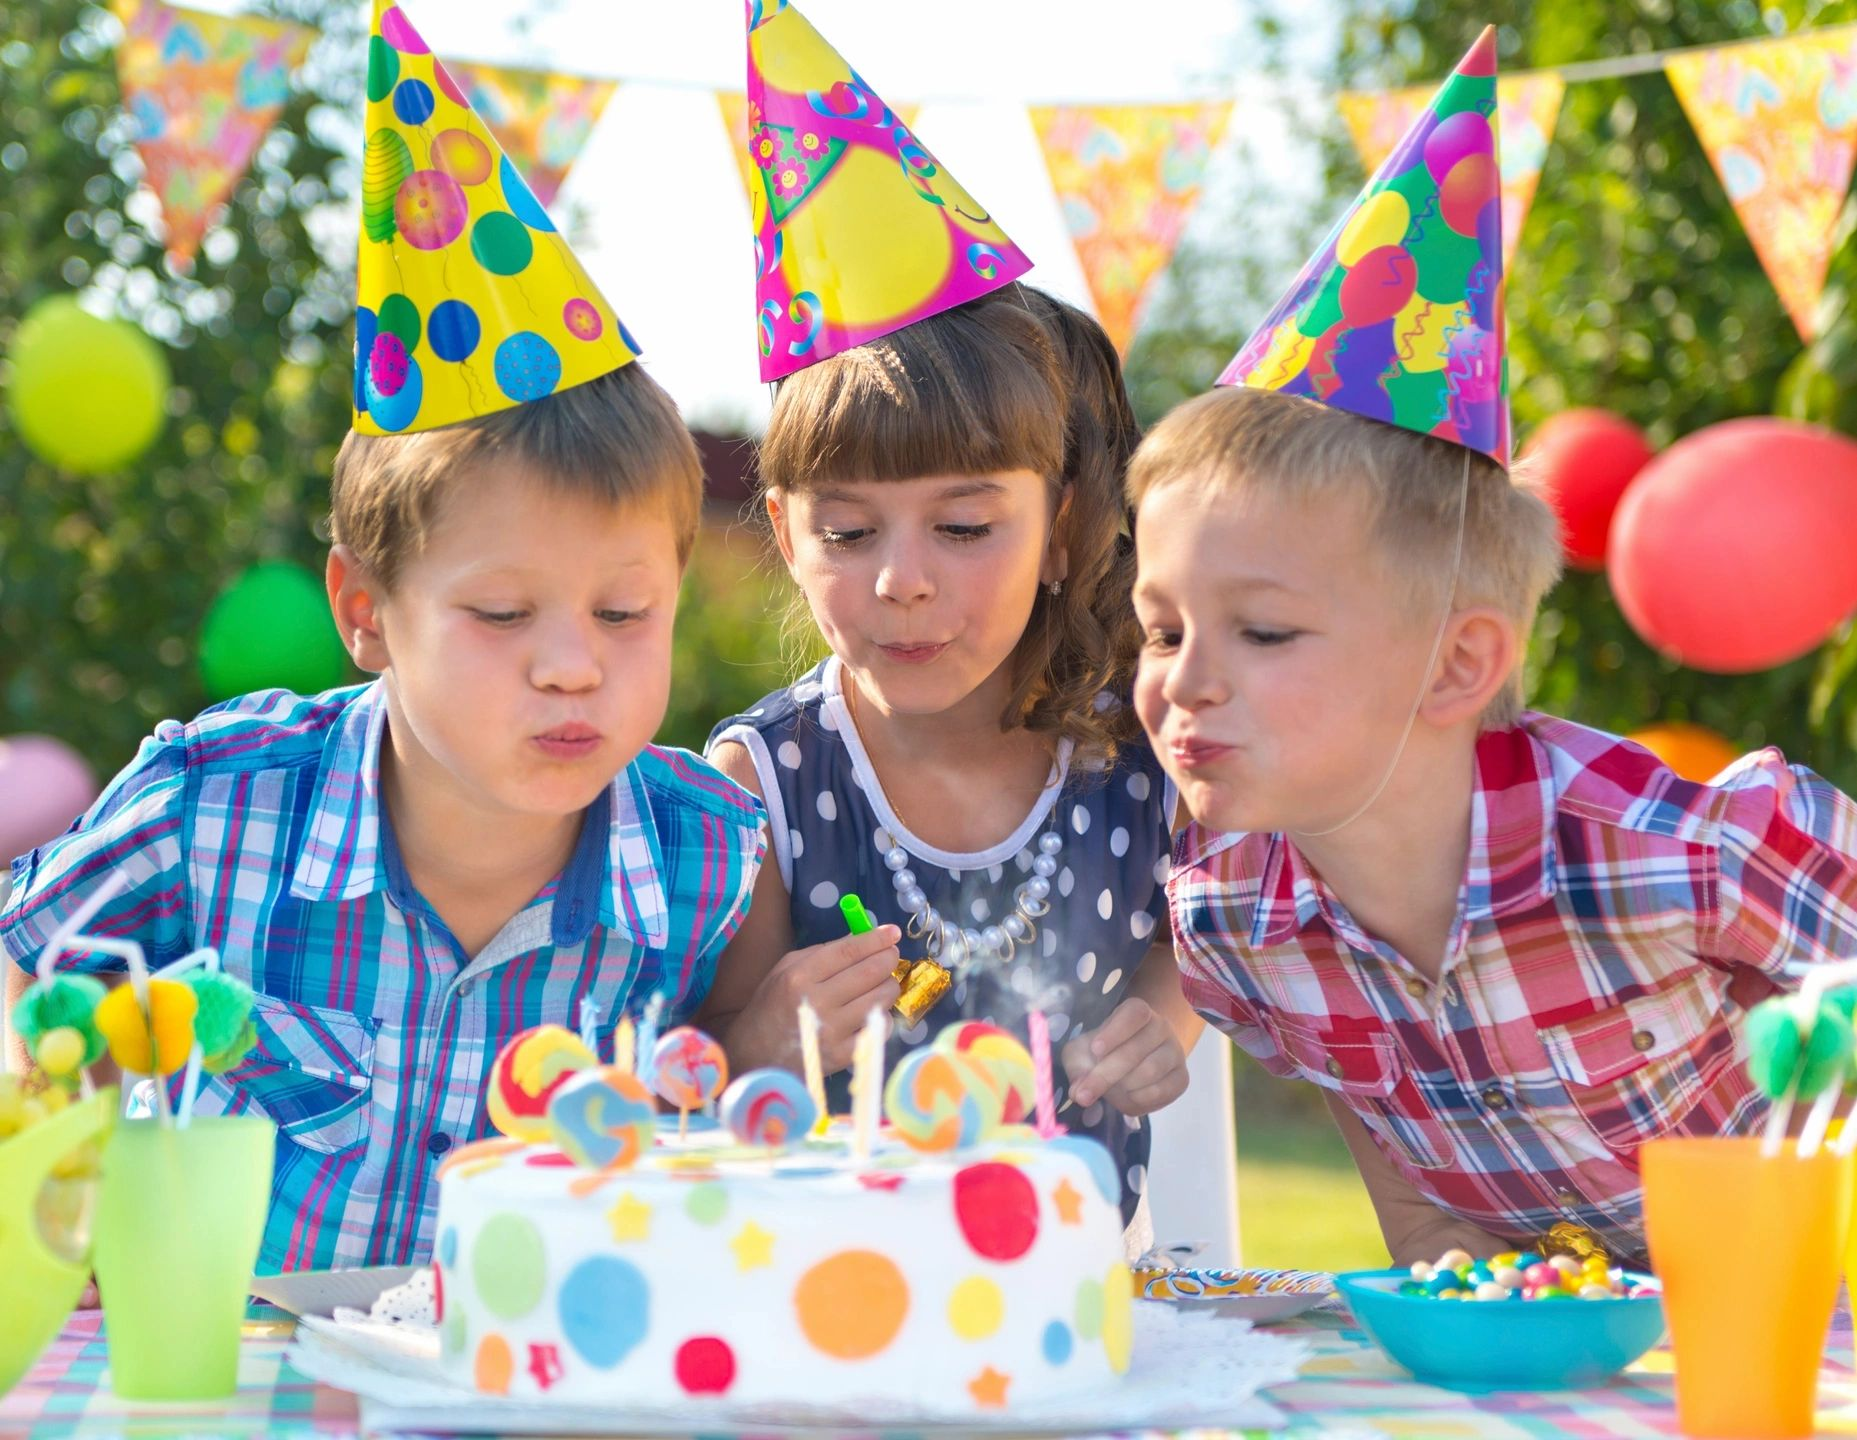 Co-parenting at a child's birthday party